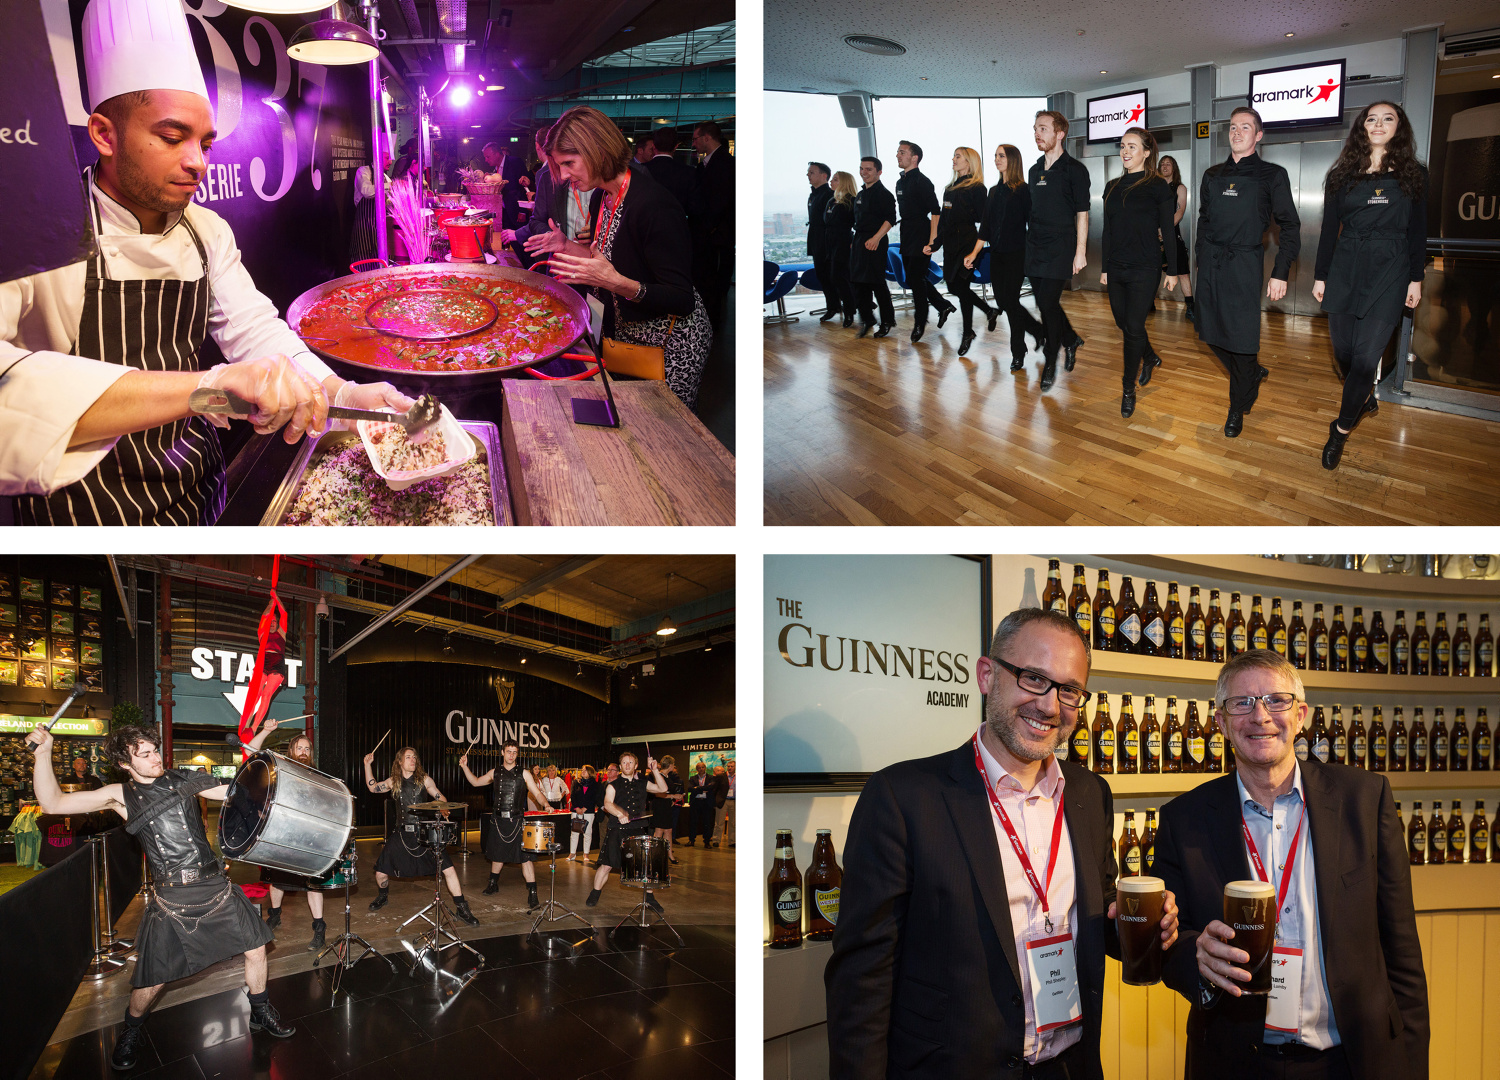 Press PR Photocall Corporate and Commercial Photographers event photo headshots awards photo www.1image.ie